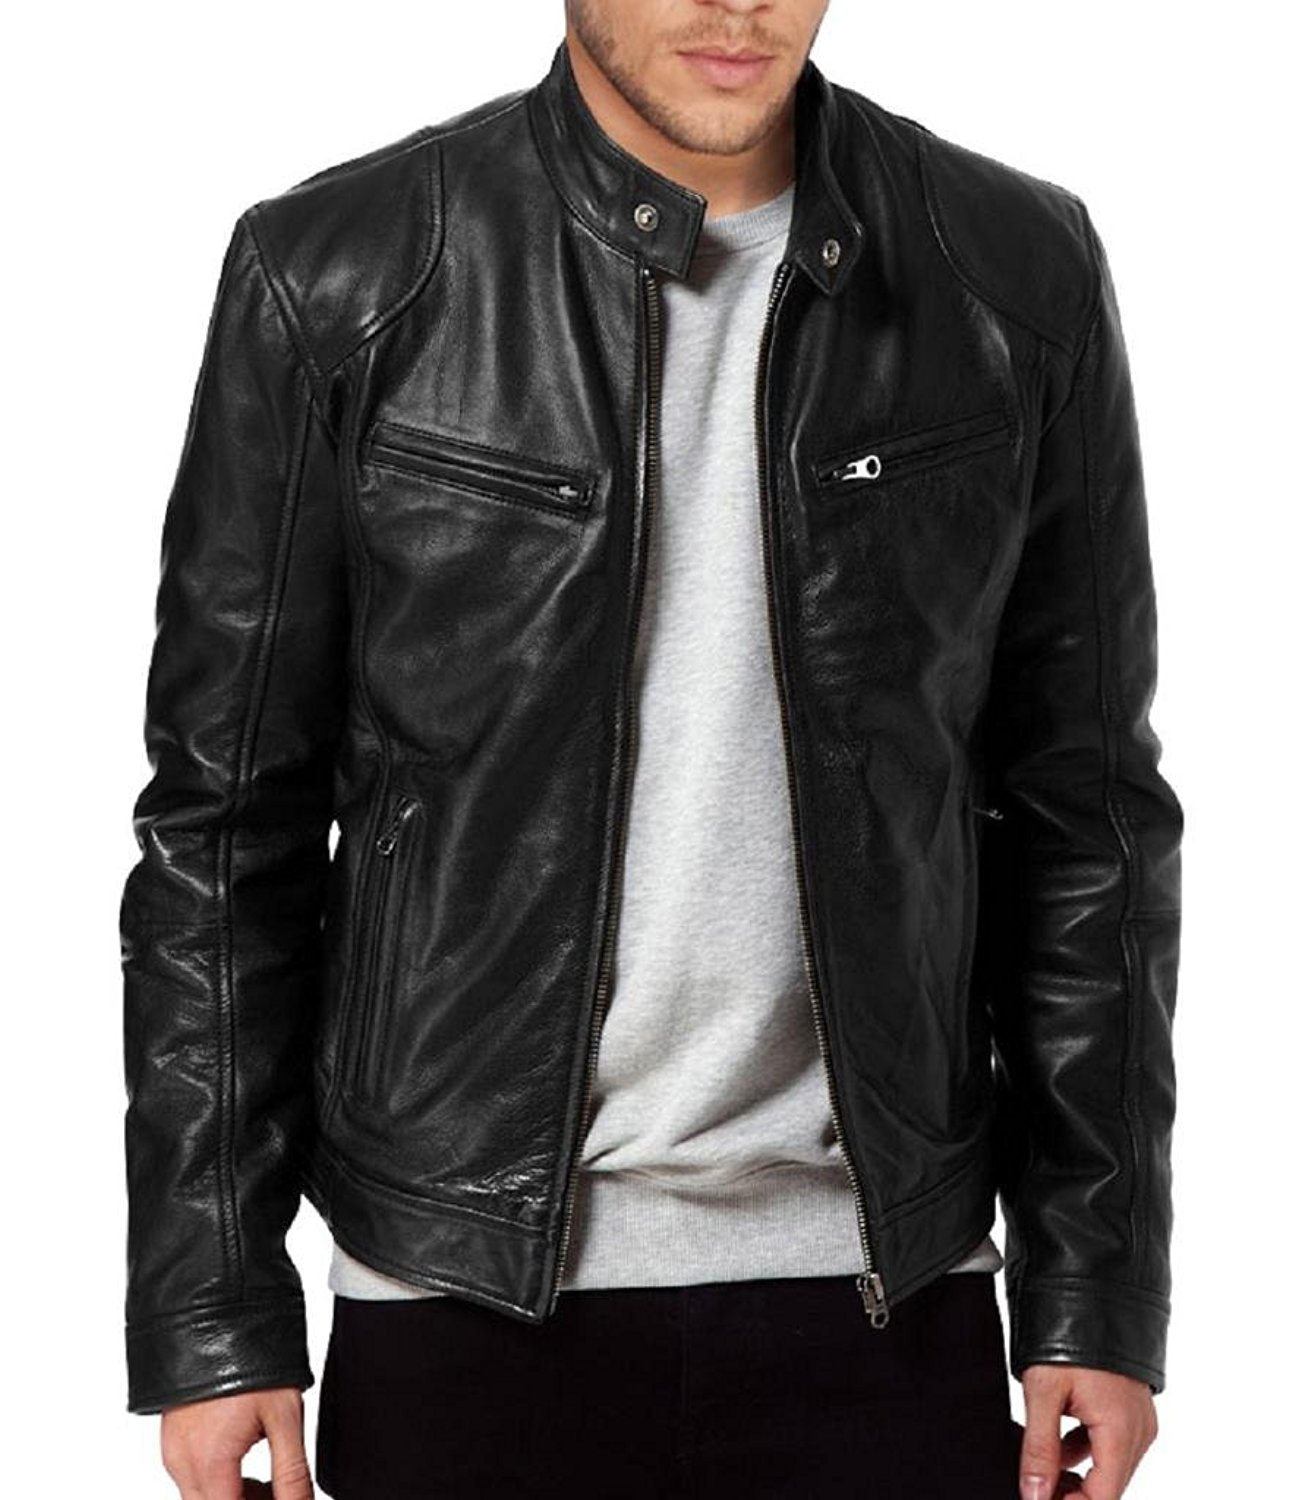 leather jacket the leather factory menu0027s sword black genuine lambskin leather biker jacket  at hpqeoky